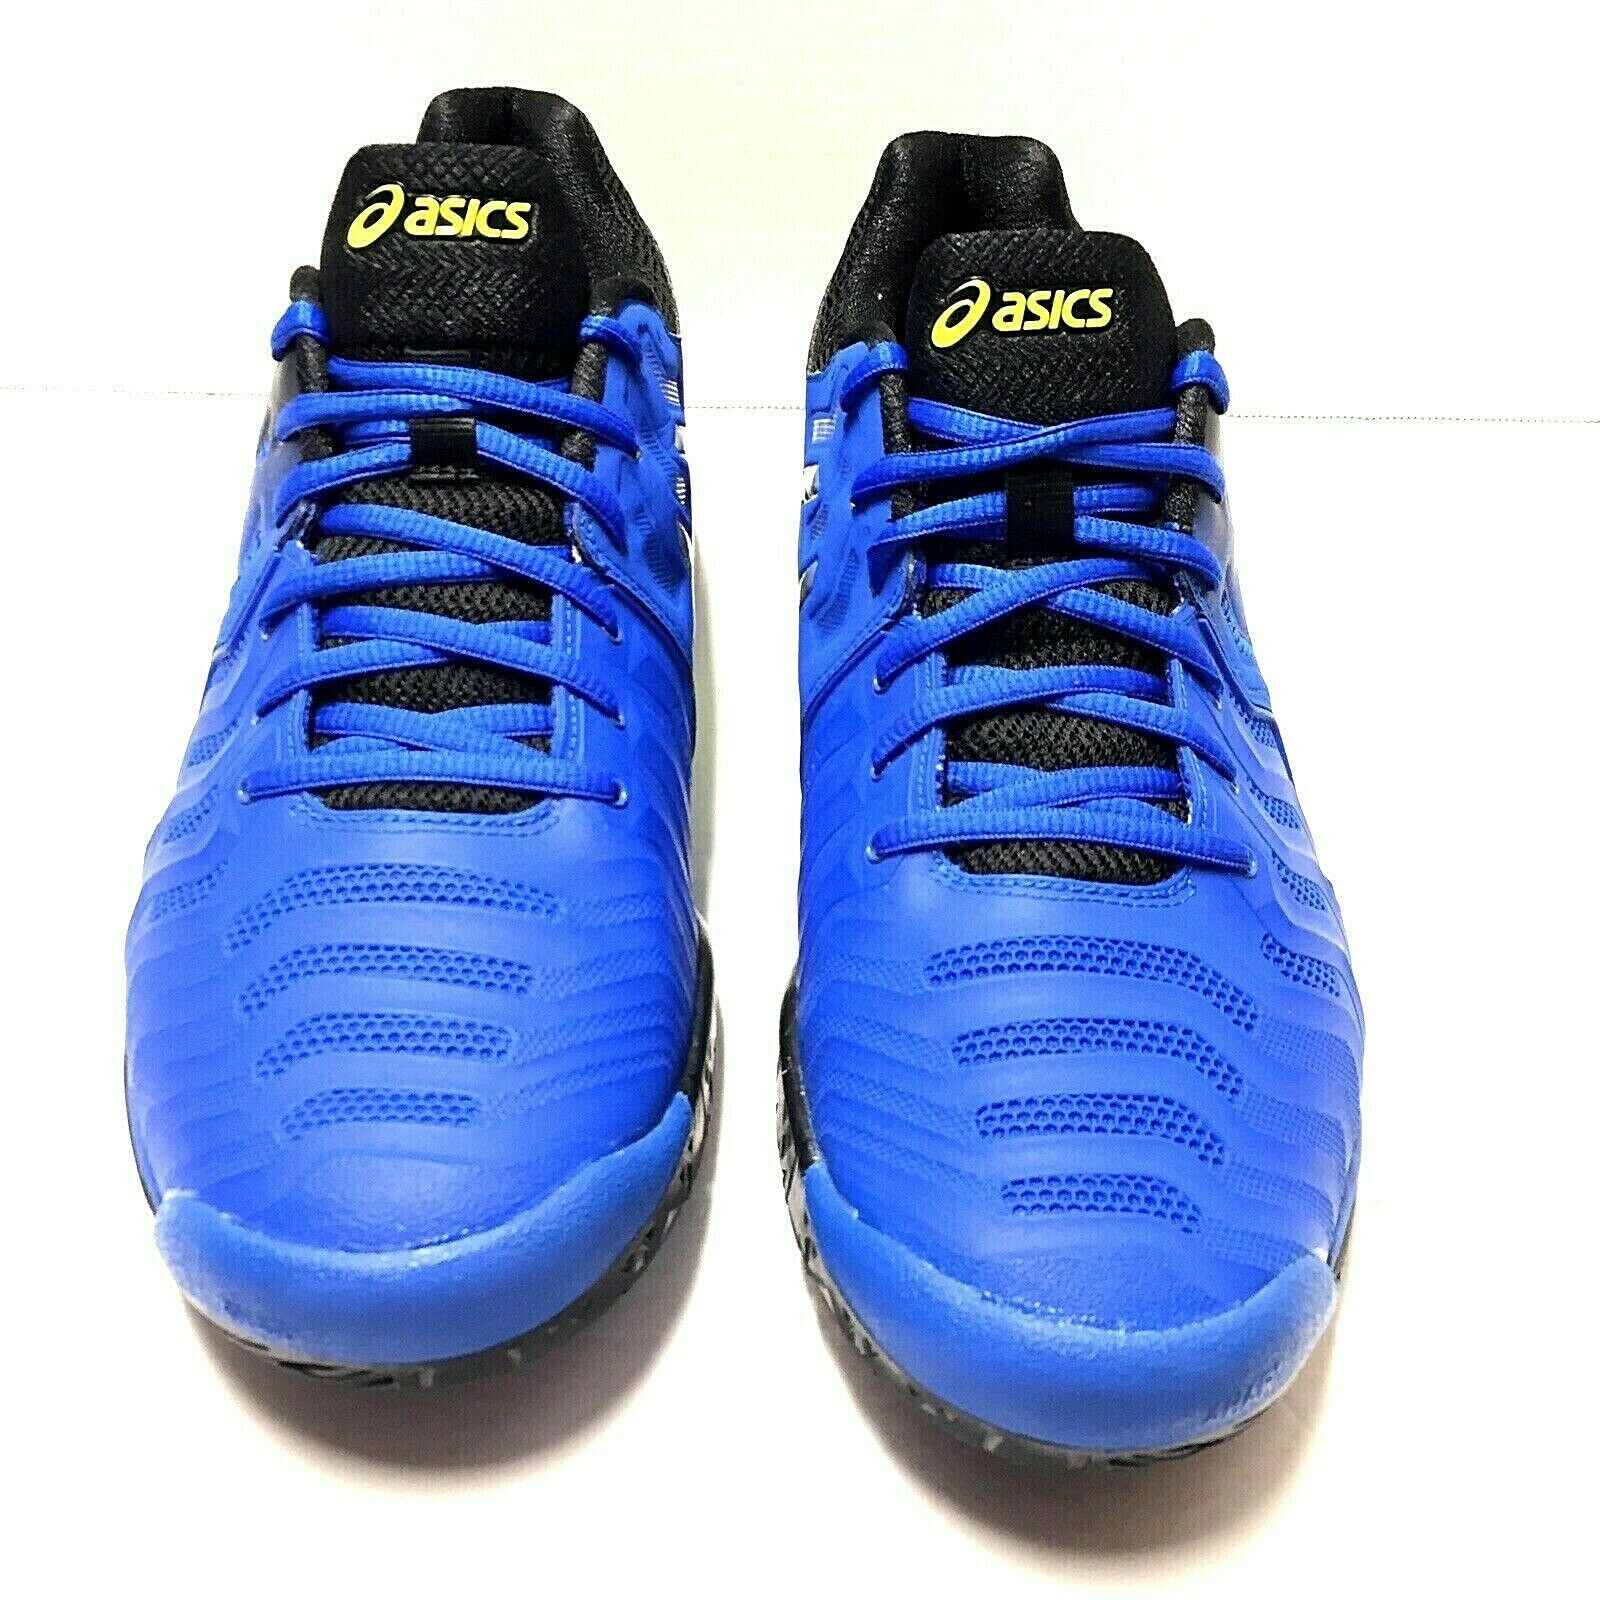 Furioso letra Circulo  ASICS Gel-resolution 7 Clay Mens E702y-9095 Black Lapis Tennis Shoes Size  12 for sale online | eBay